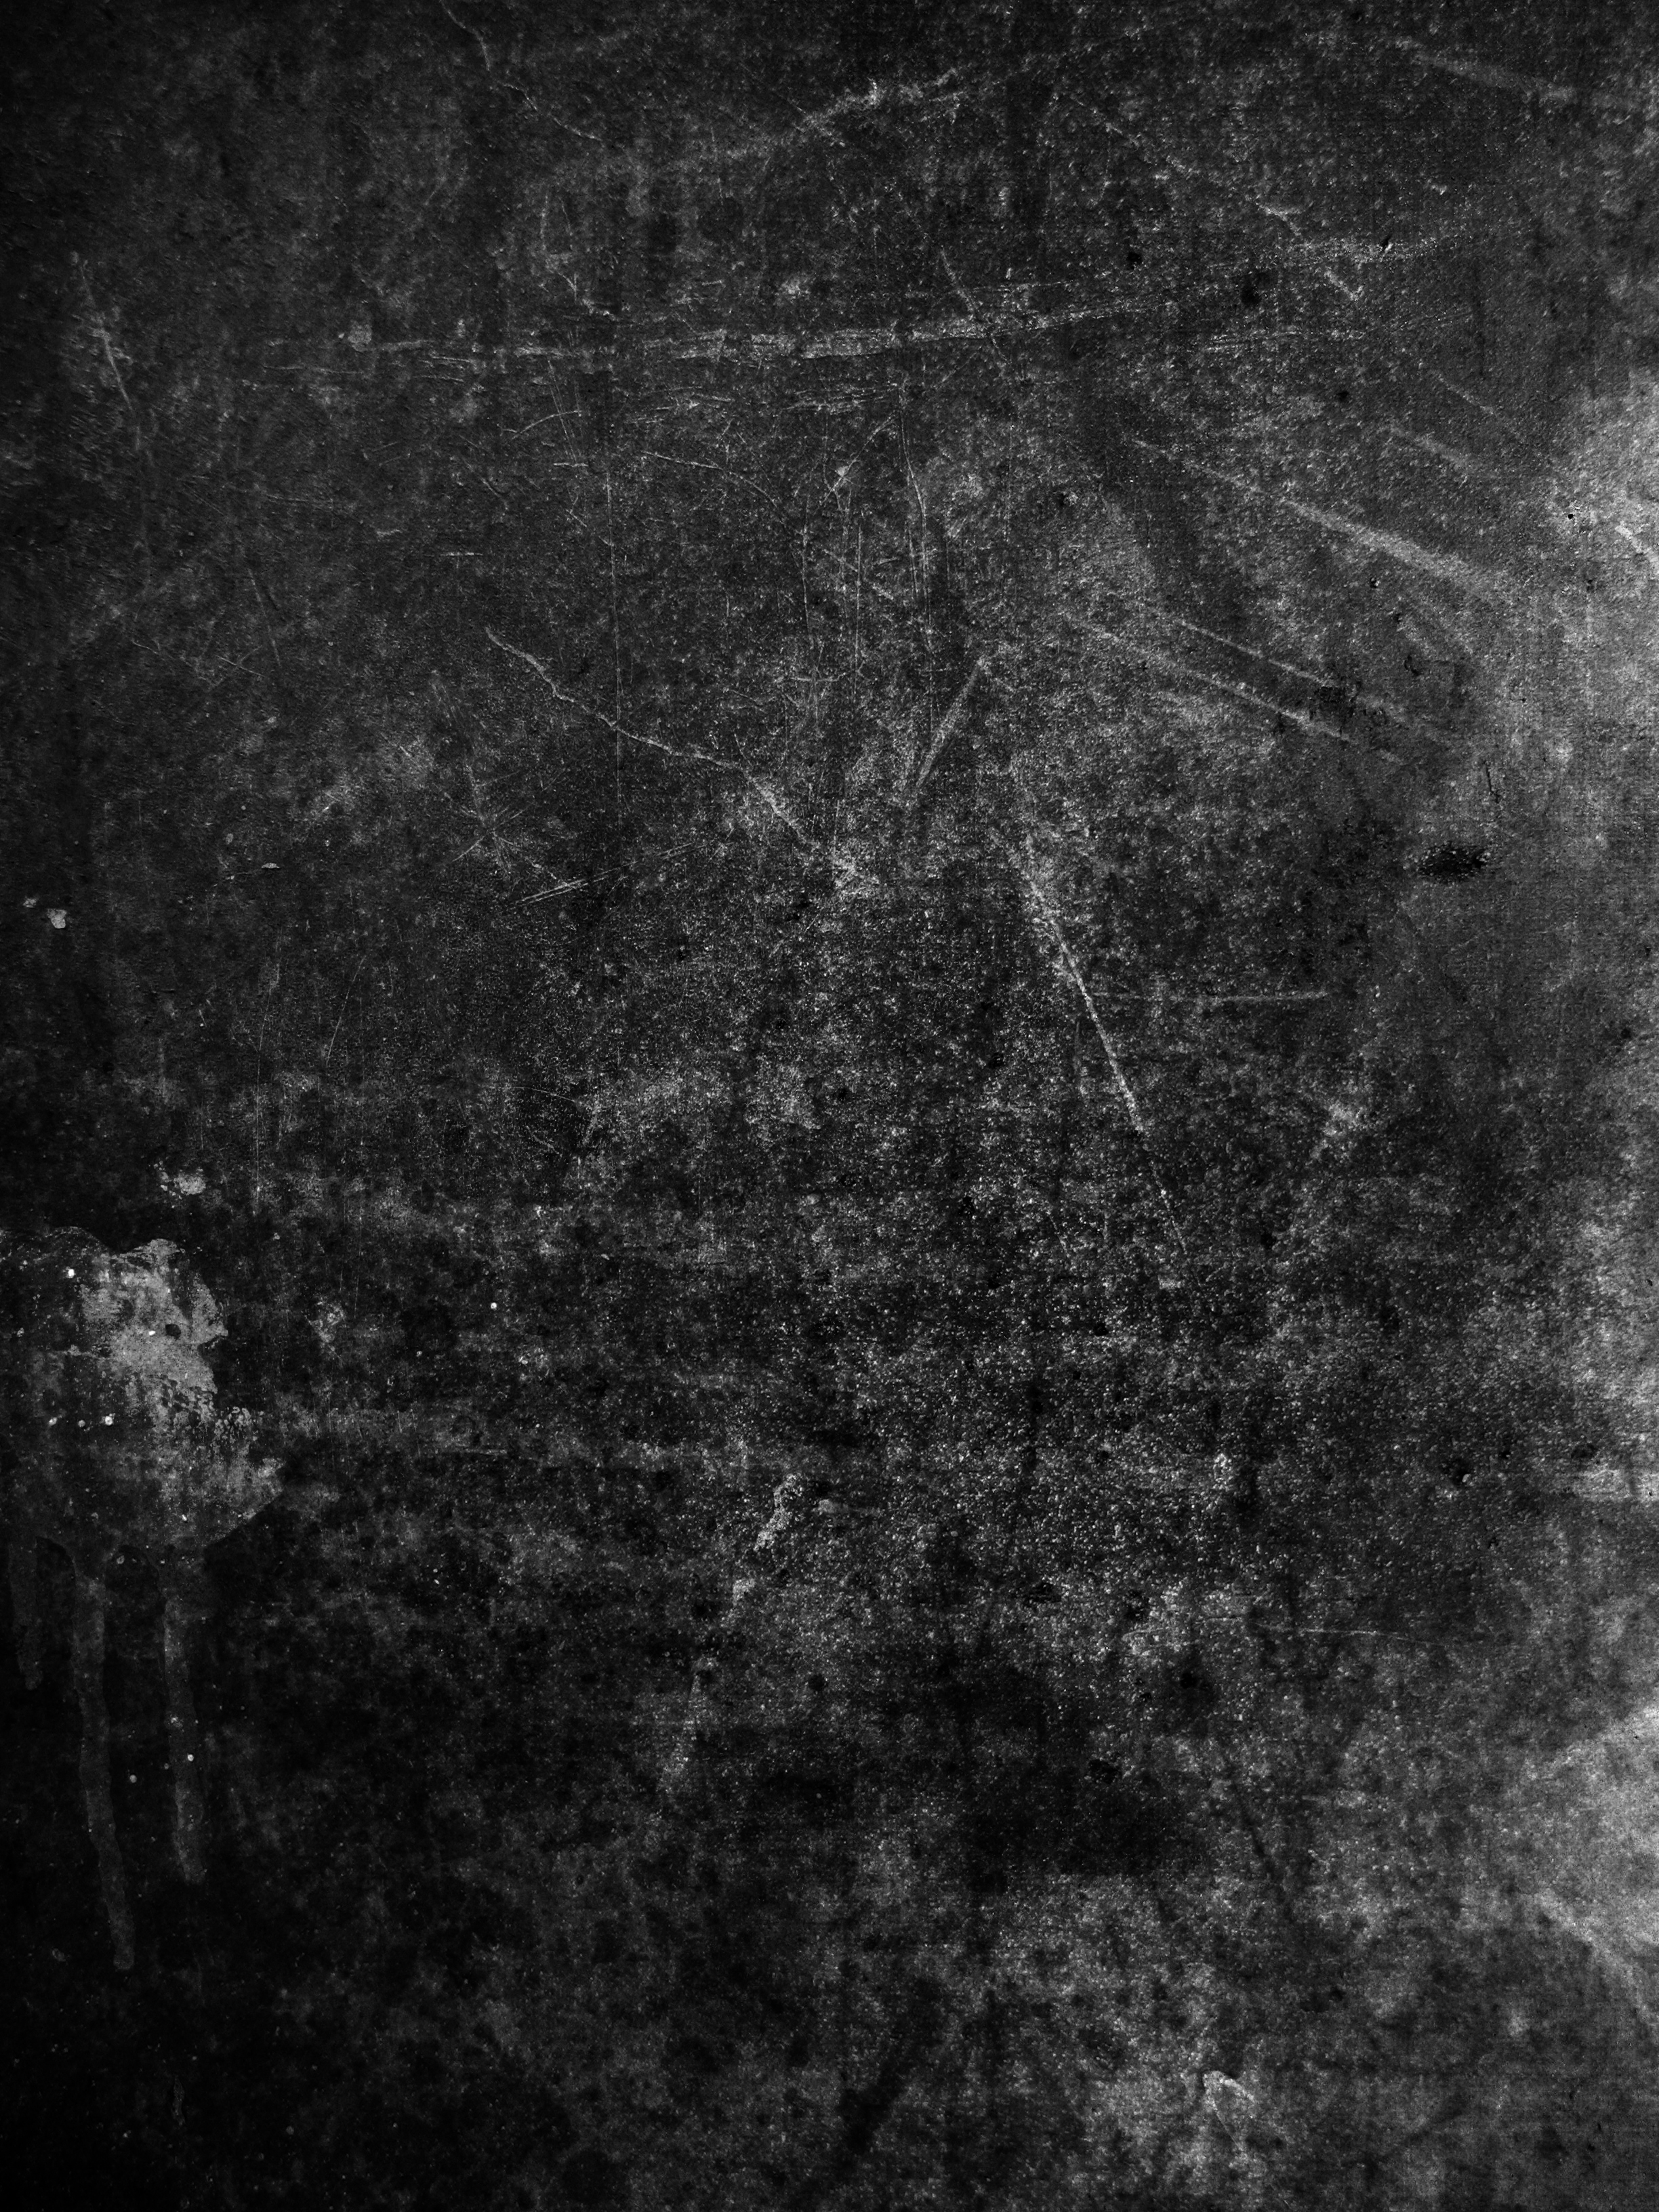 Black and white grunge texture Photoshop brush